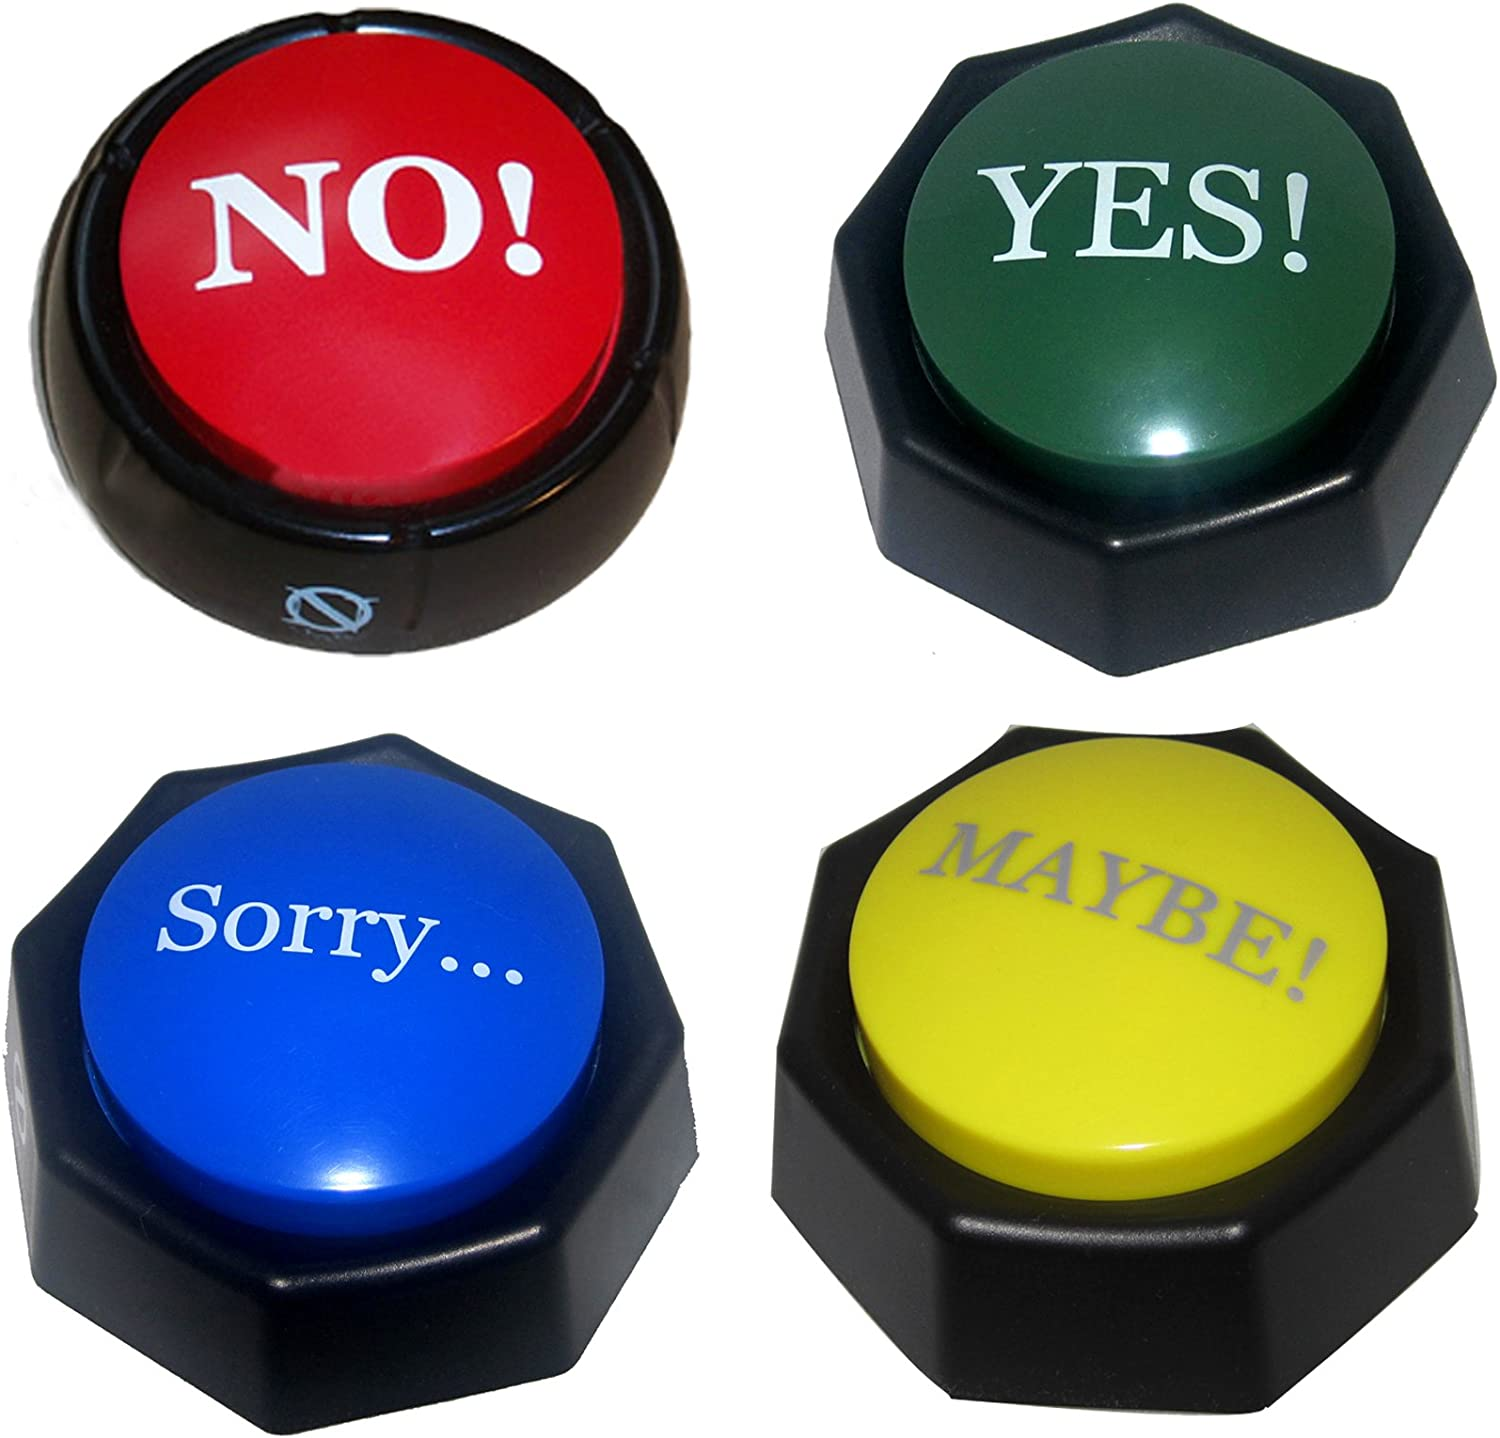 Amazon.com: 4 Total Buttons! The NO, YES, SORRY and MAYBE Buttons ...